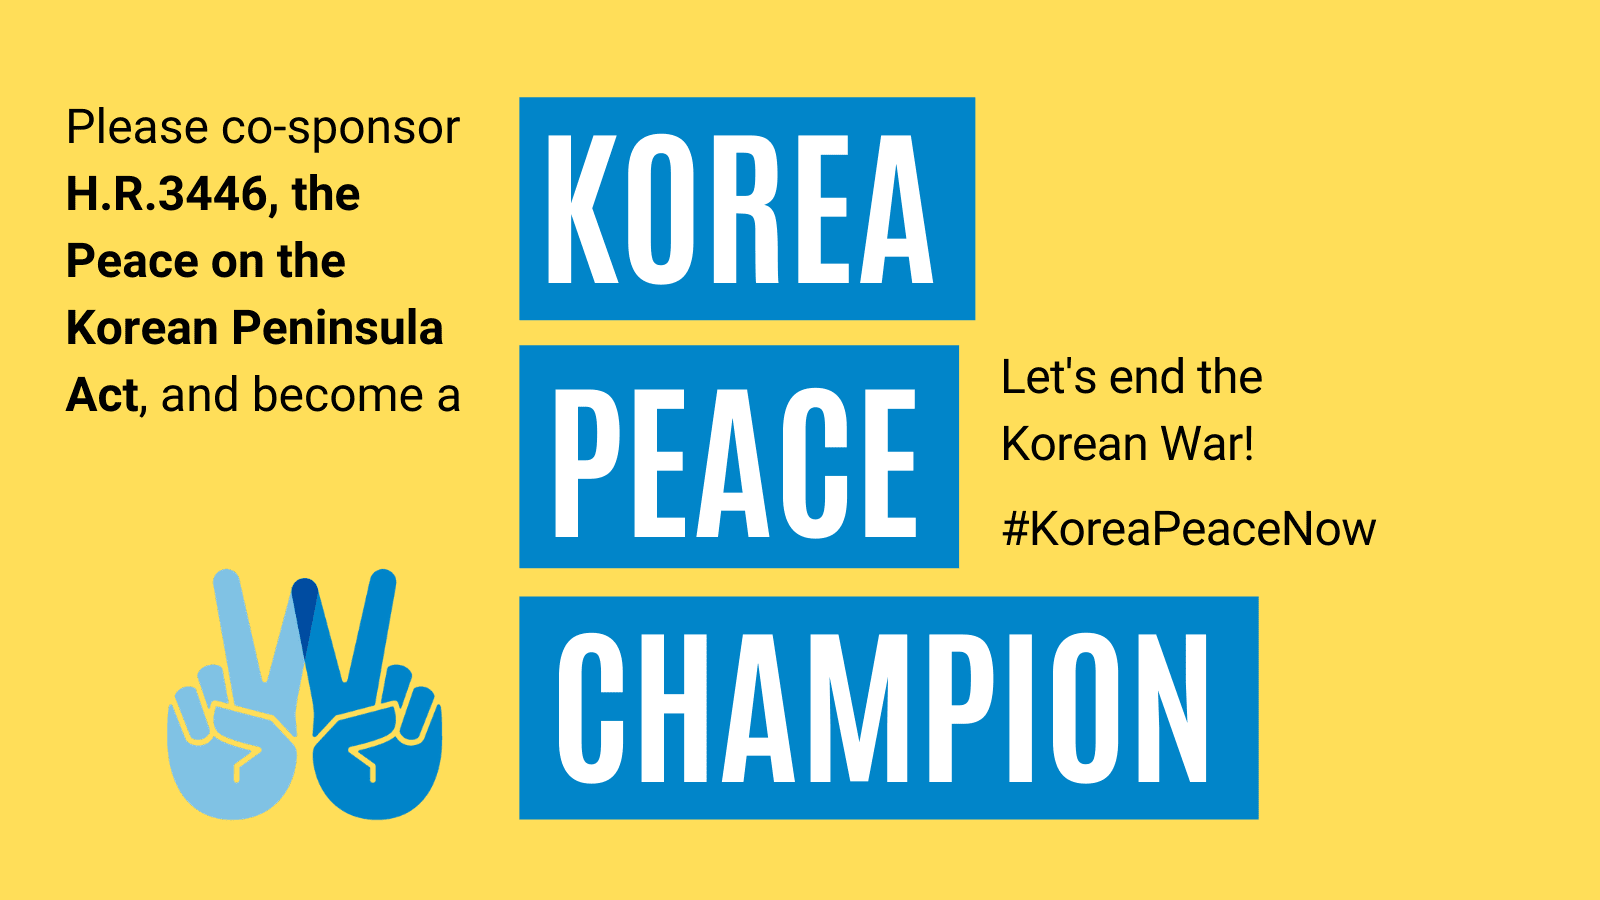 Please co-sponsor H.R.3446, the Peace on the Korean Peninsula Act, and become a Korea Peace Champion. Let's end the Korean War!